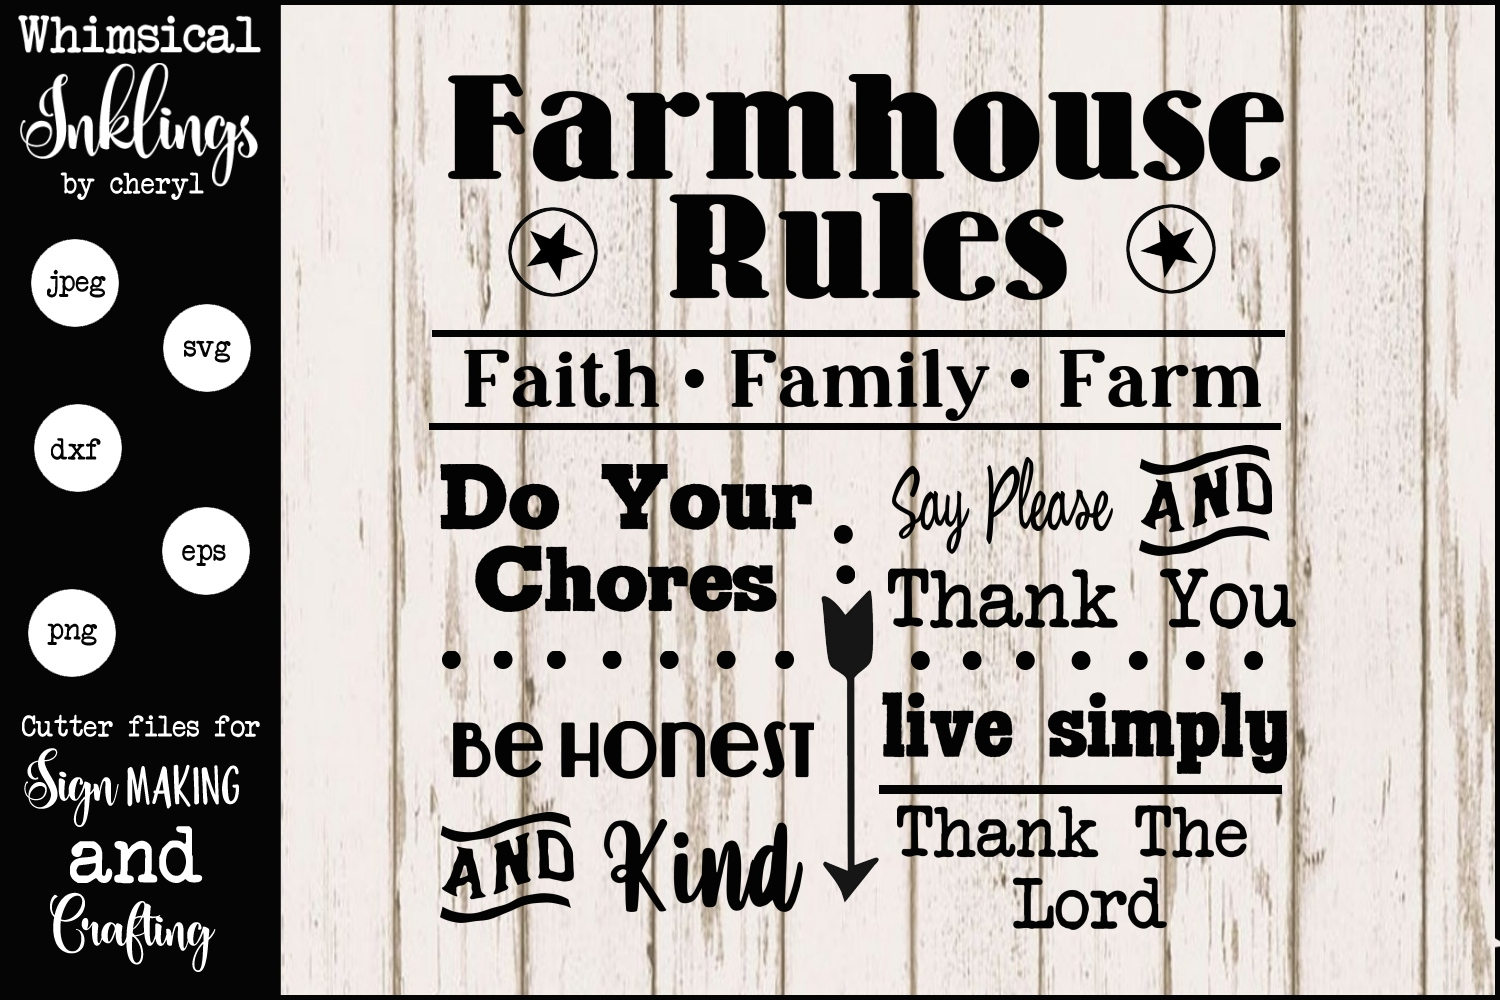 Farmhouse Rules 2 SVG example image 2